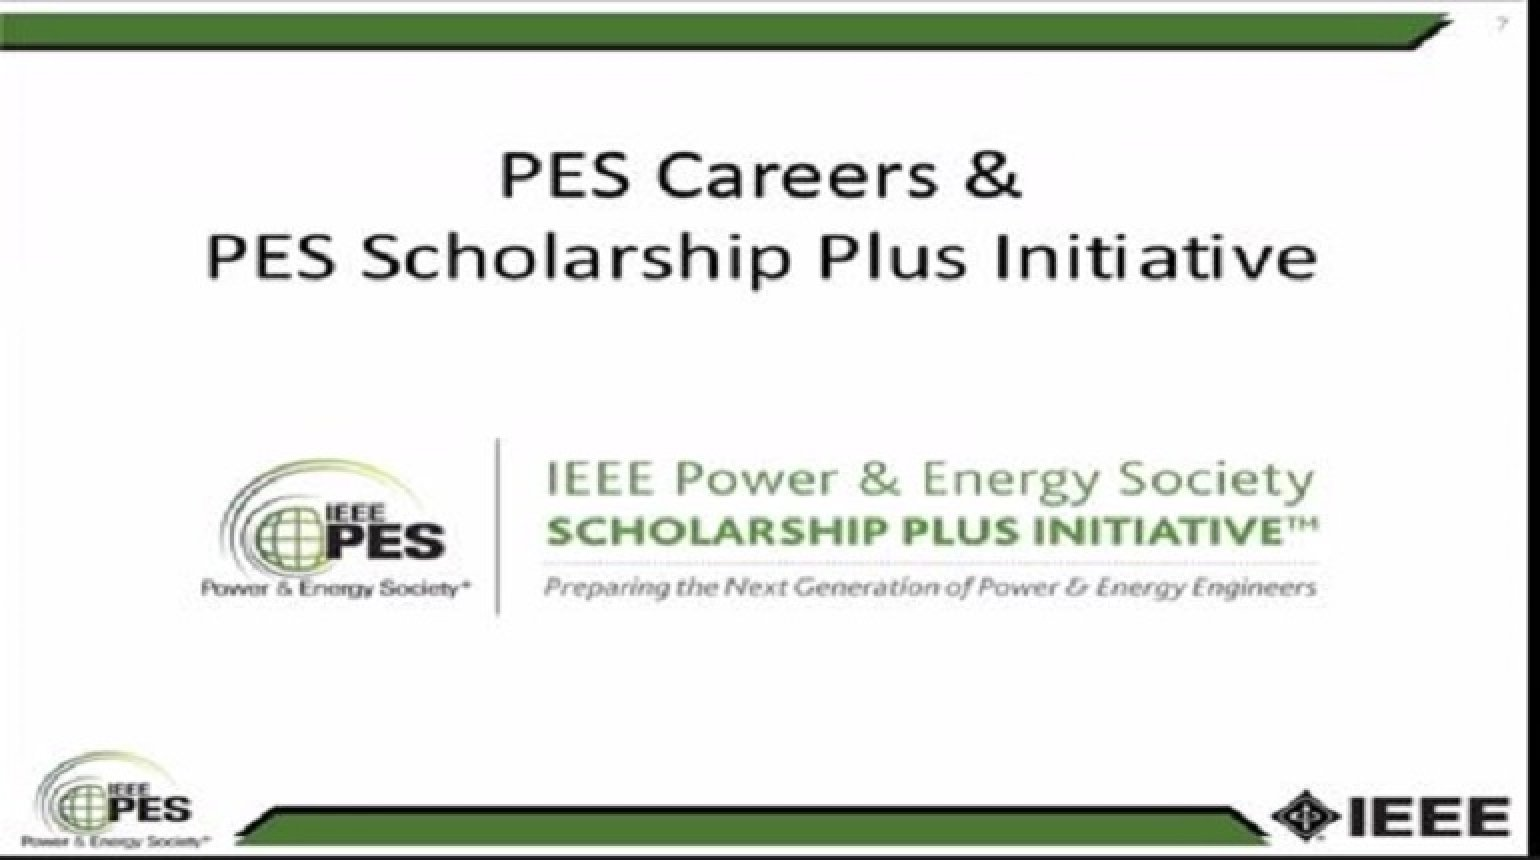 IEEE PES Student Membership, PES Scholarship Plus and Career Advice